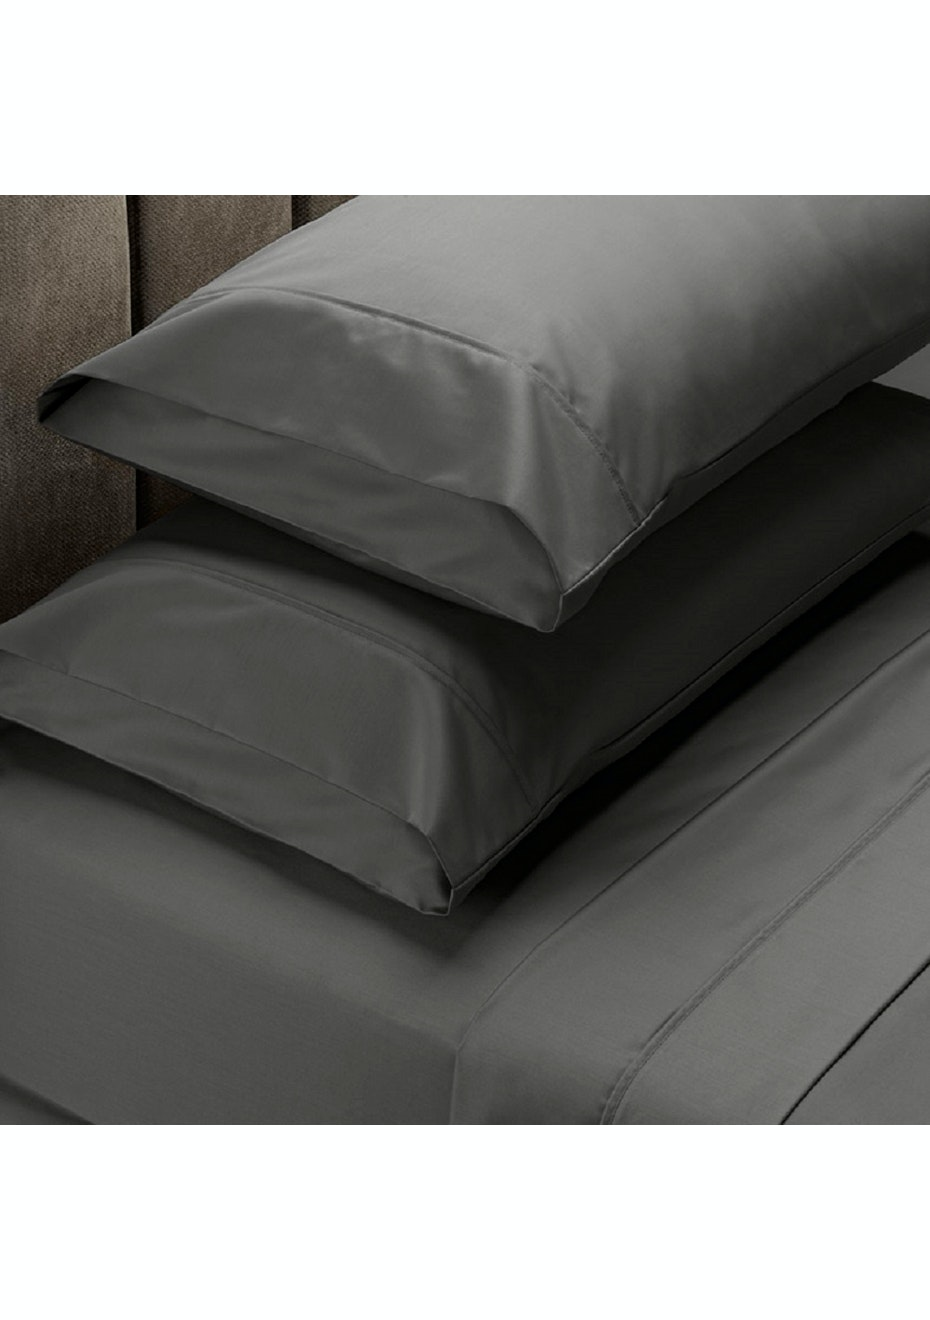 Park Avenue 1000 Thread count 100% Egyptian Cotton Sheet sets Mega Queen - Granite